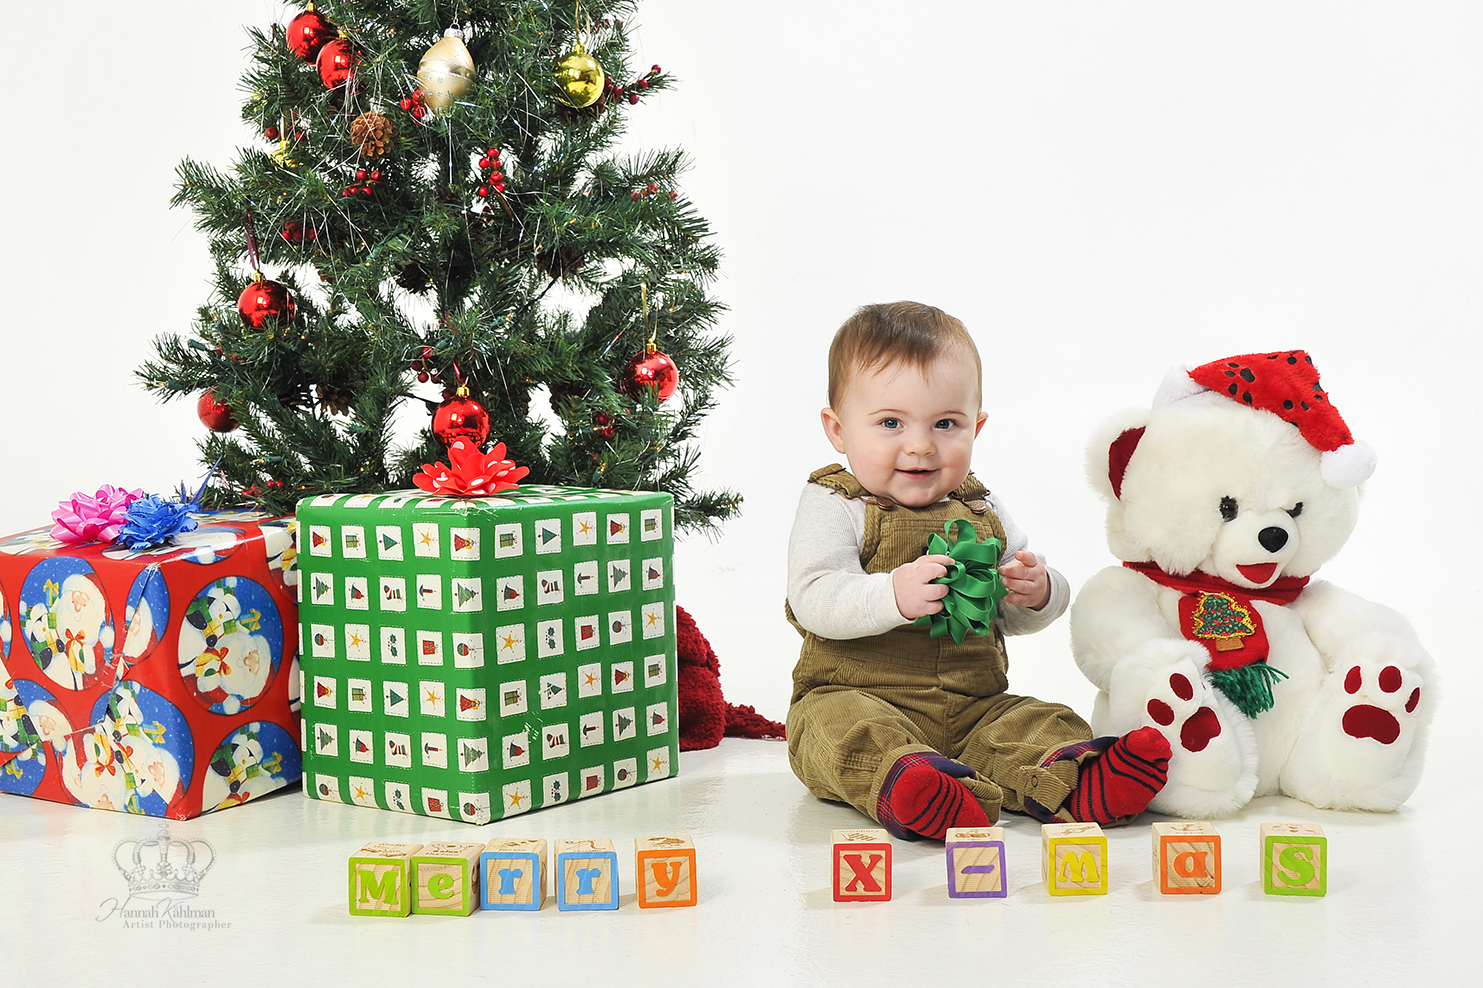 Fun_classic_creative_Christmas_photos_in